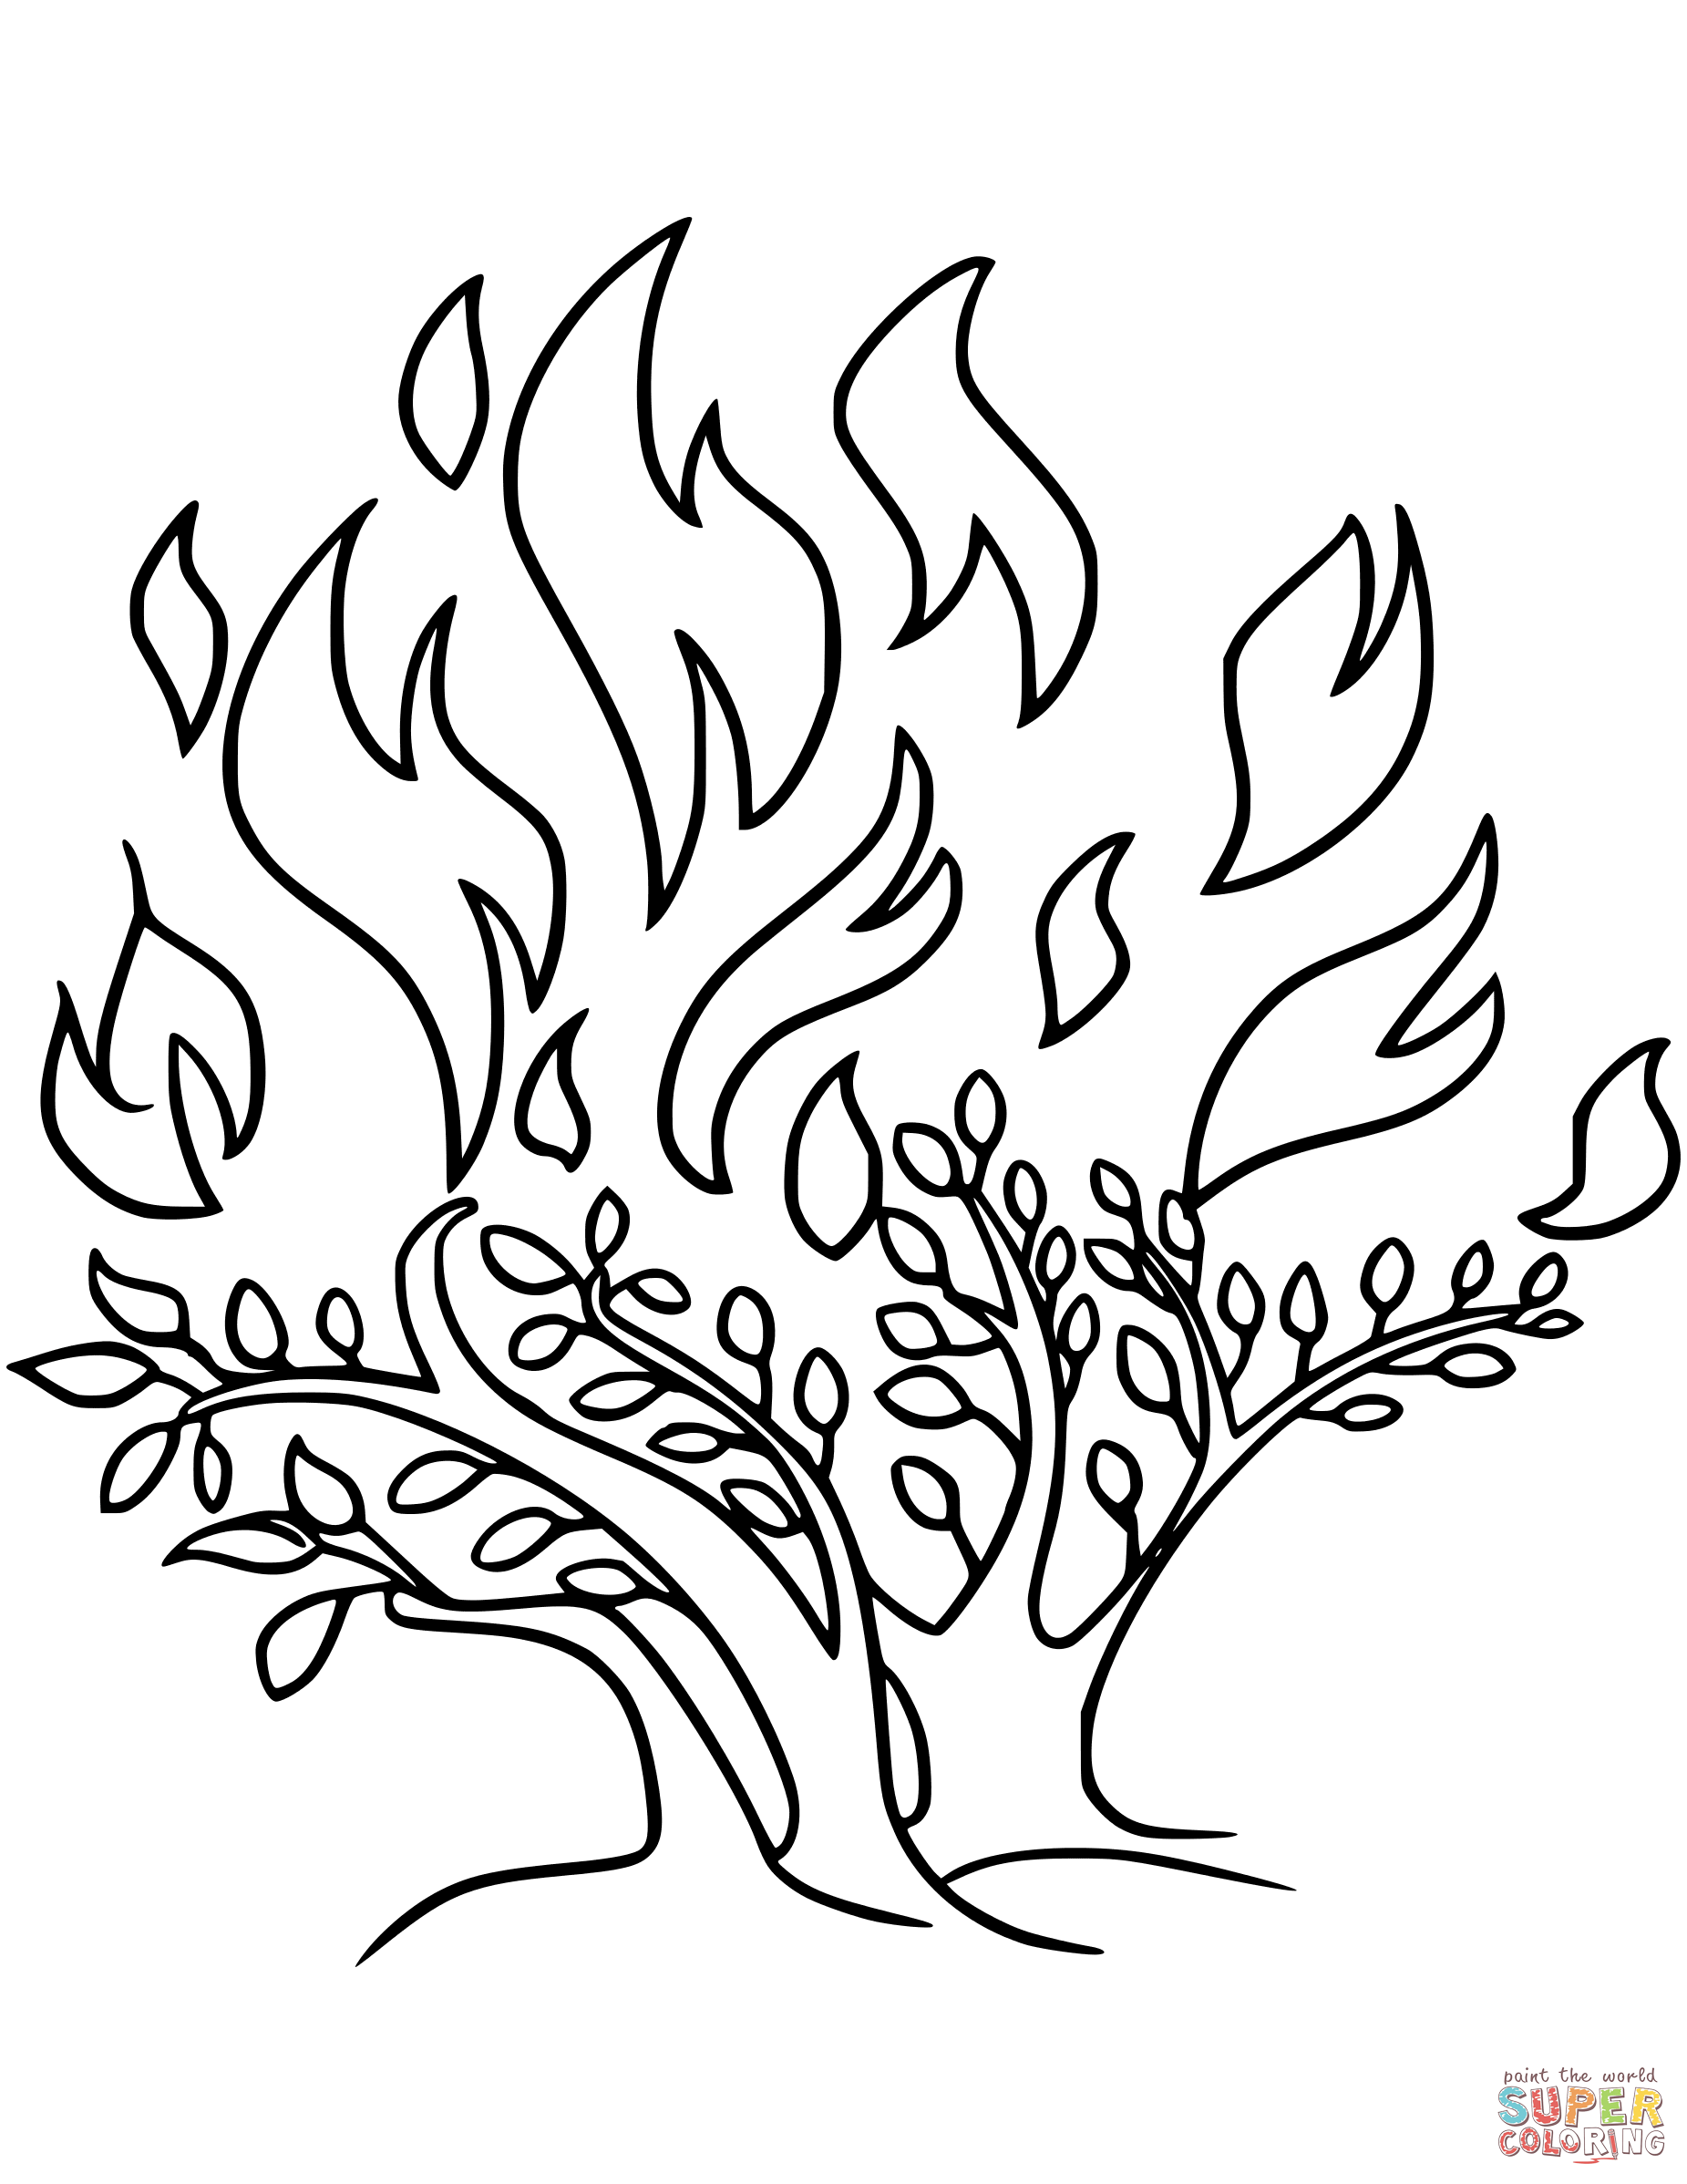 burning brush picture | The Call Of Moses Colouring Pages Burning ...